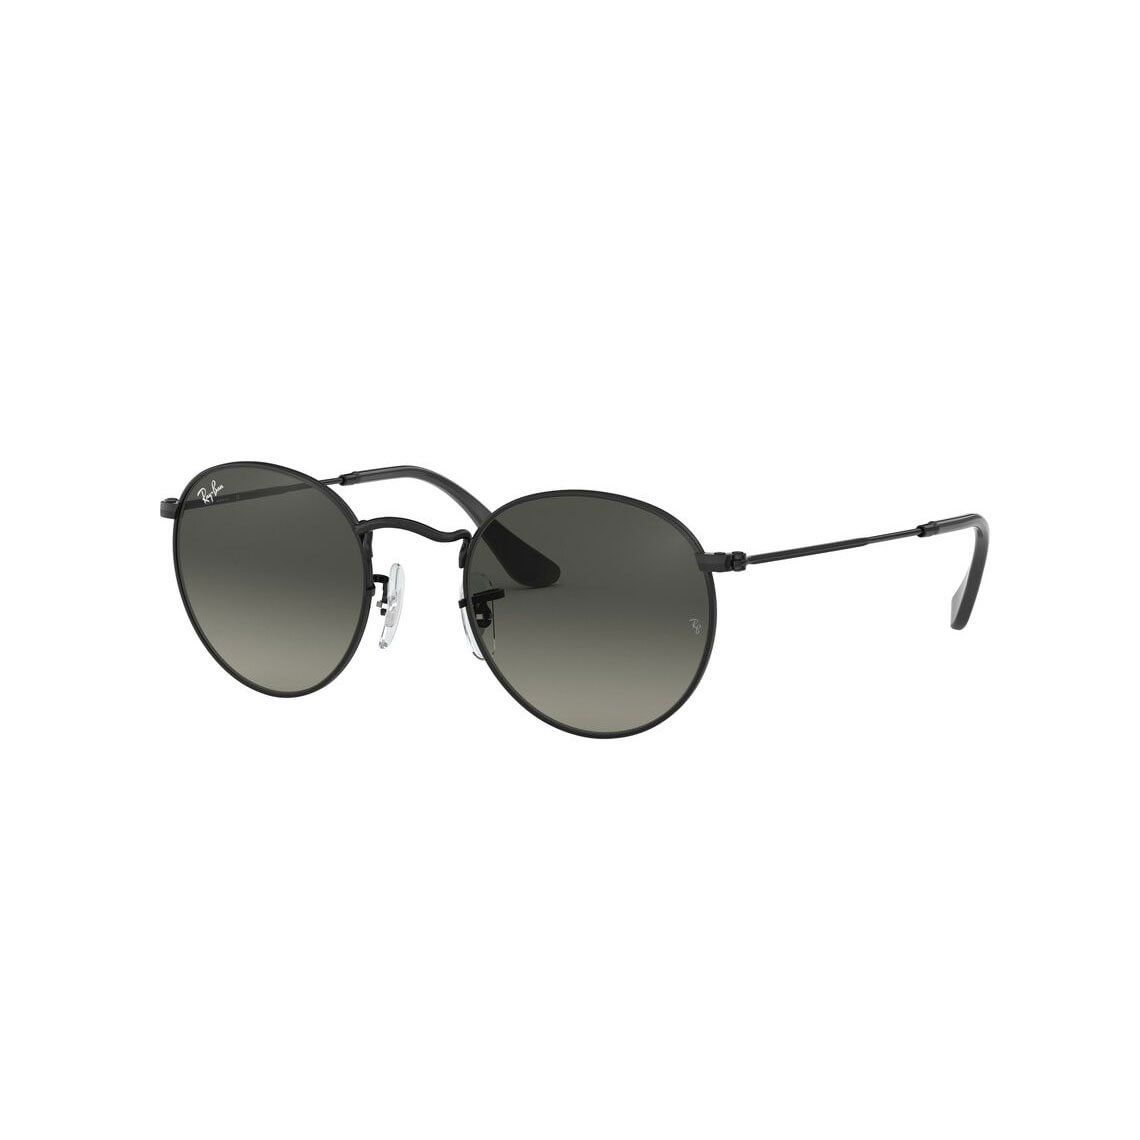 Ray-Ban Round flat lenses RB3447N 002/71 53